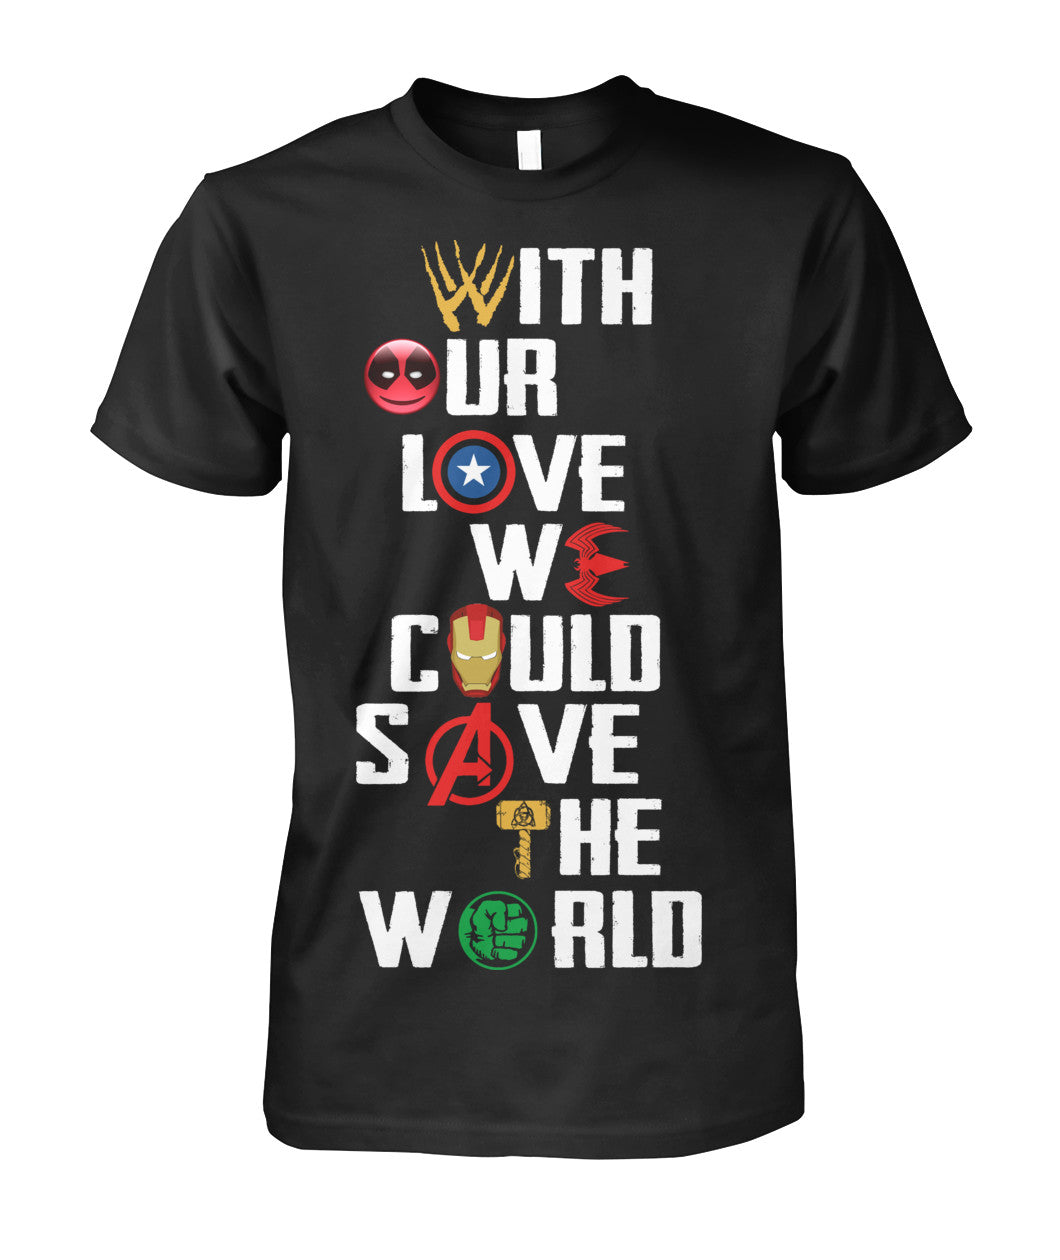 Save the world Marvel shirt 2018